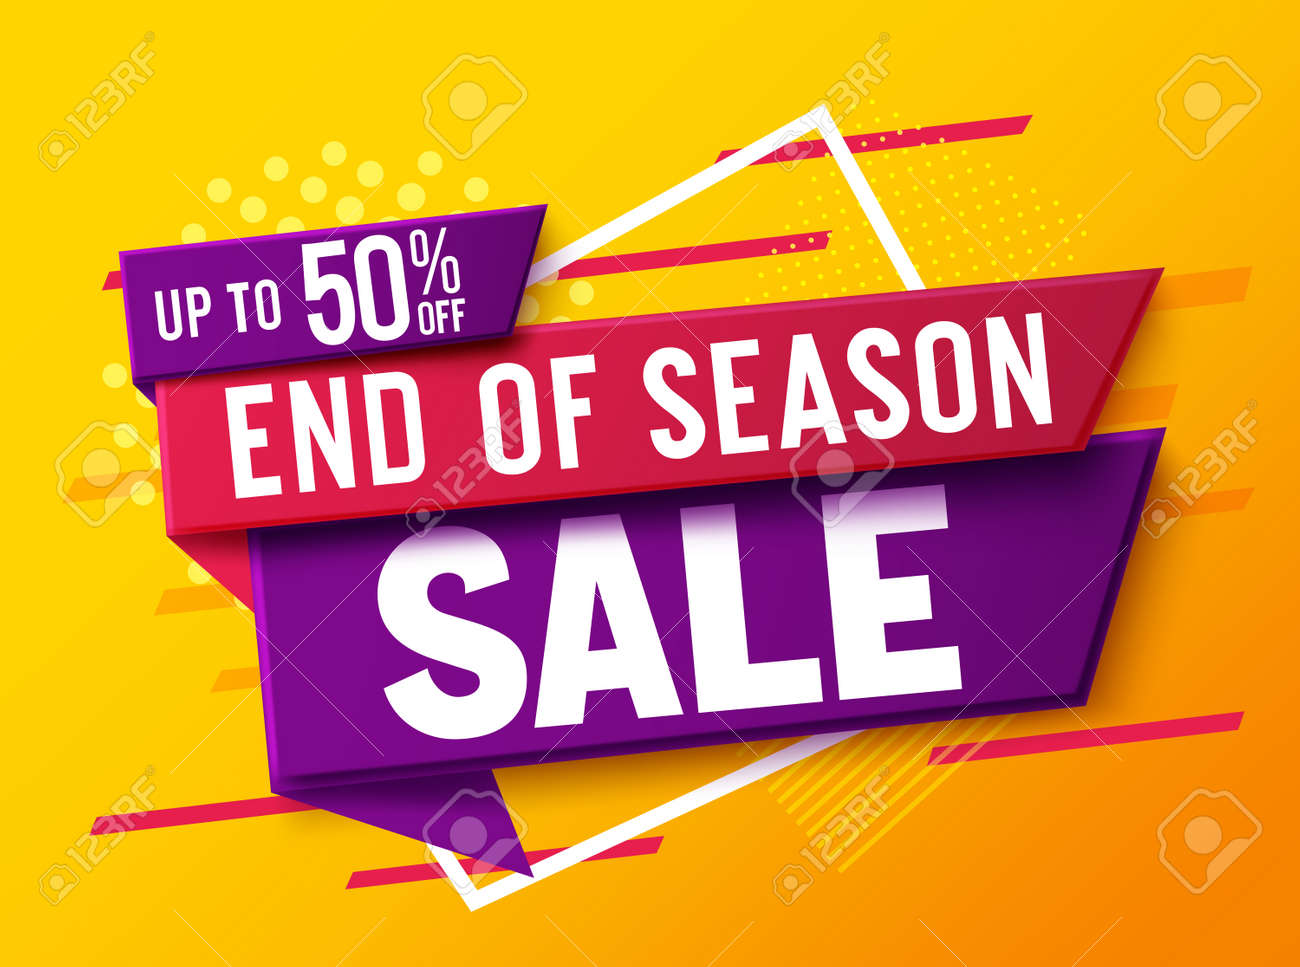 Sale discount vector banner design. 50% off sale text in a label tags for market shopping promotion advertisement. Vector illustration. - 158818191